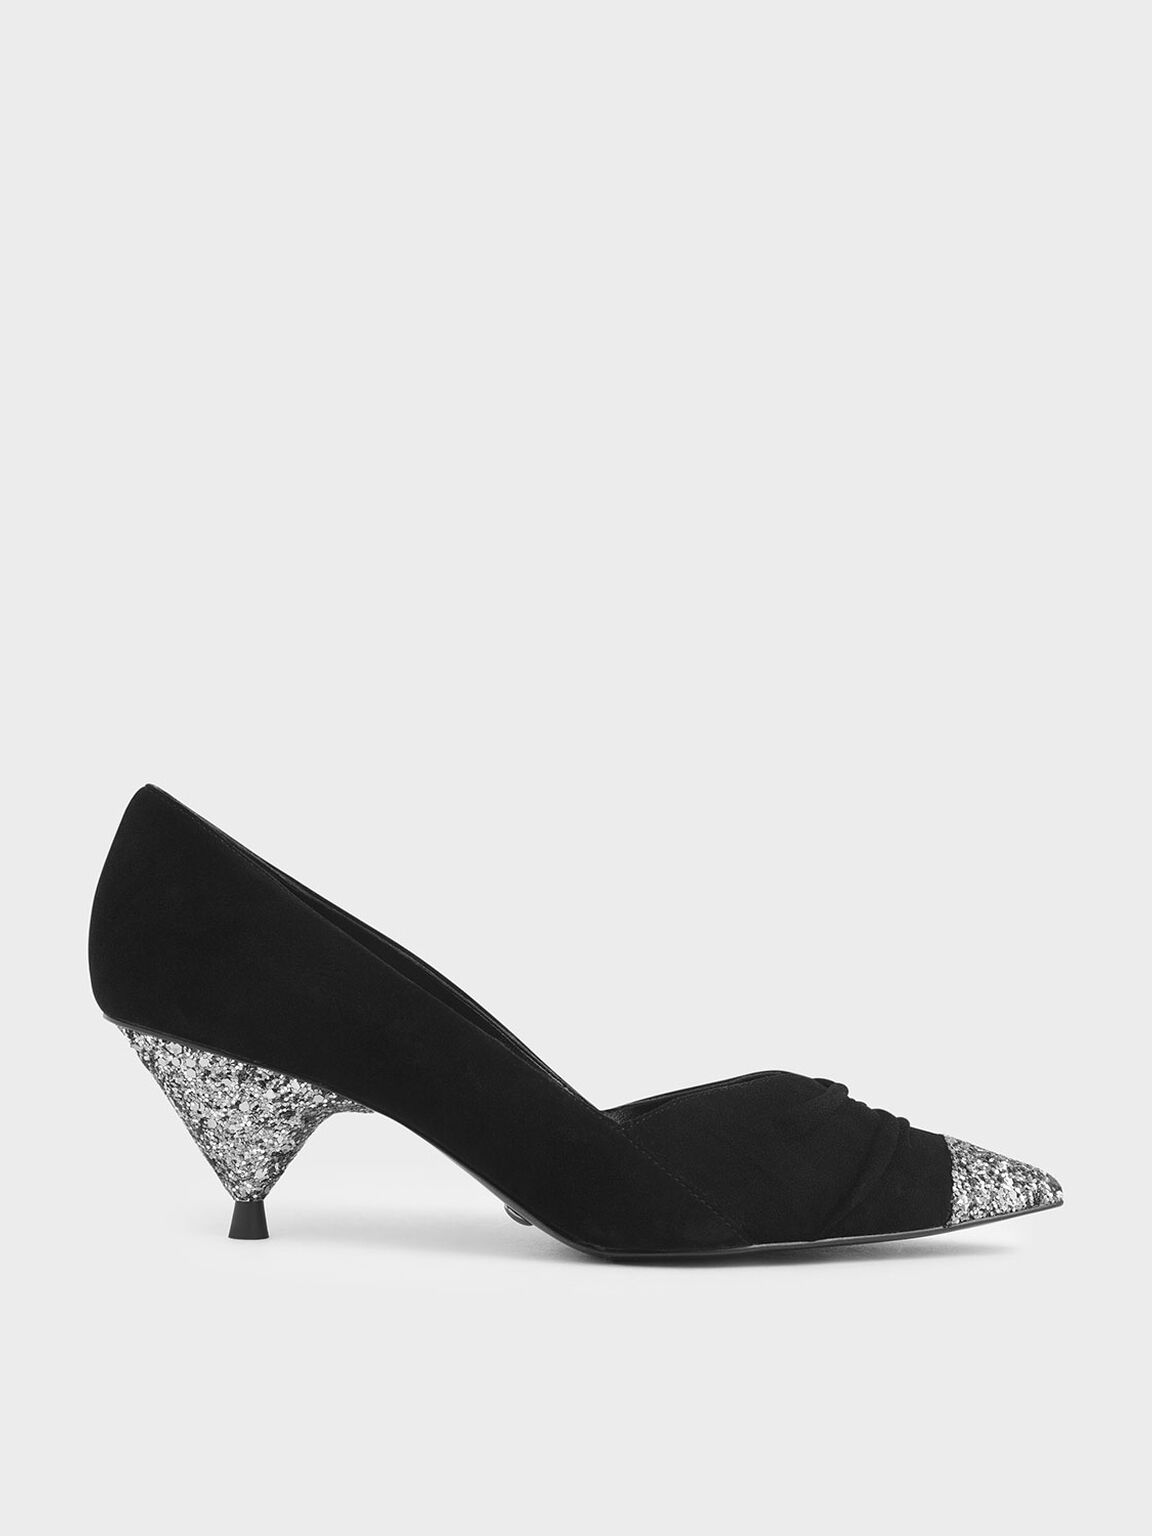 Glitter Cone Heel Pumps (Kid Suede), Black, hi-res